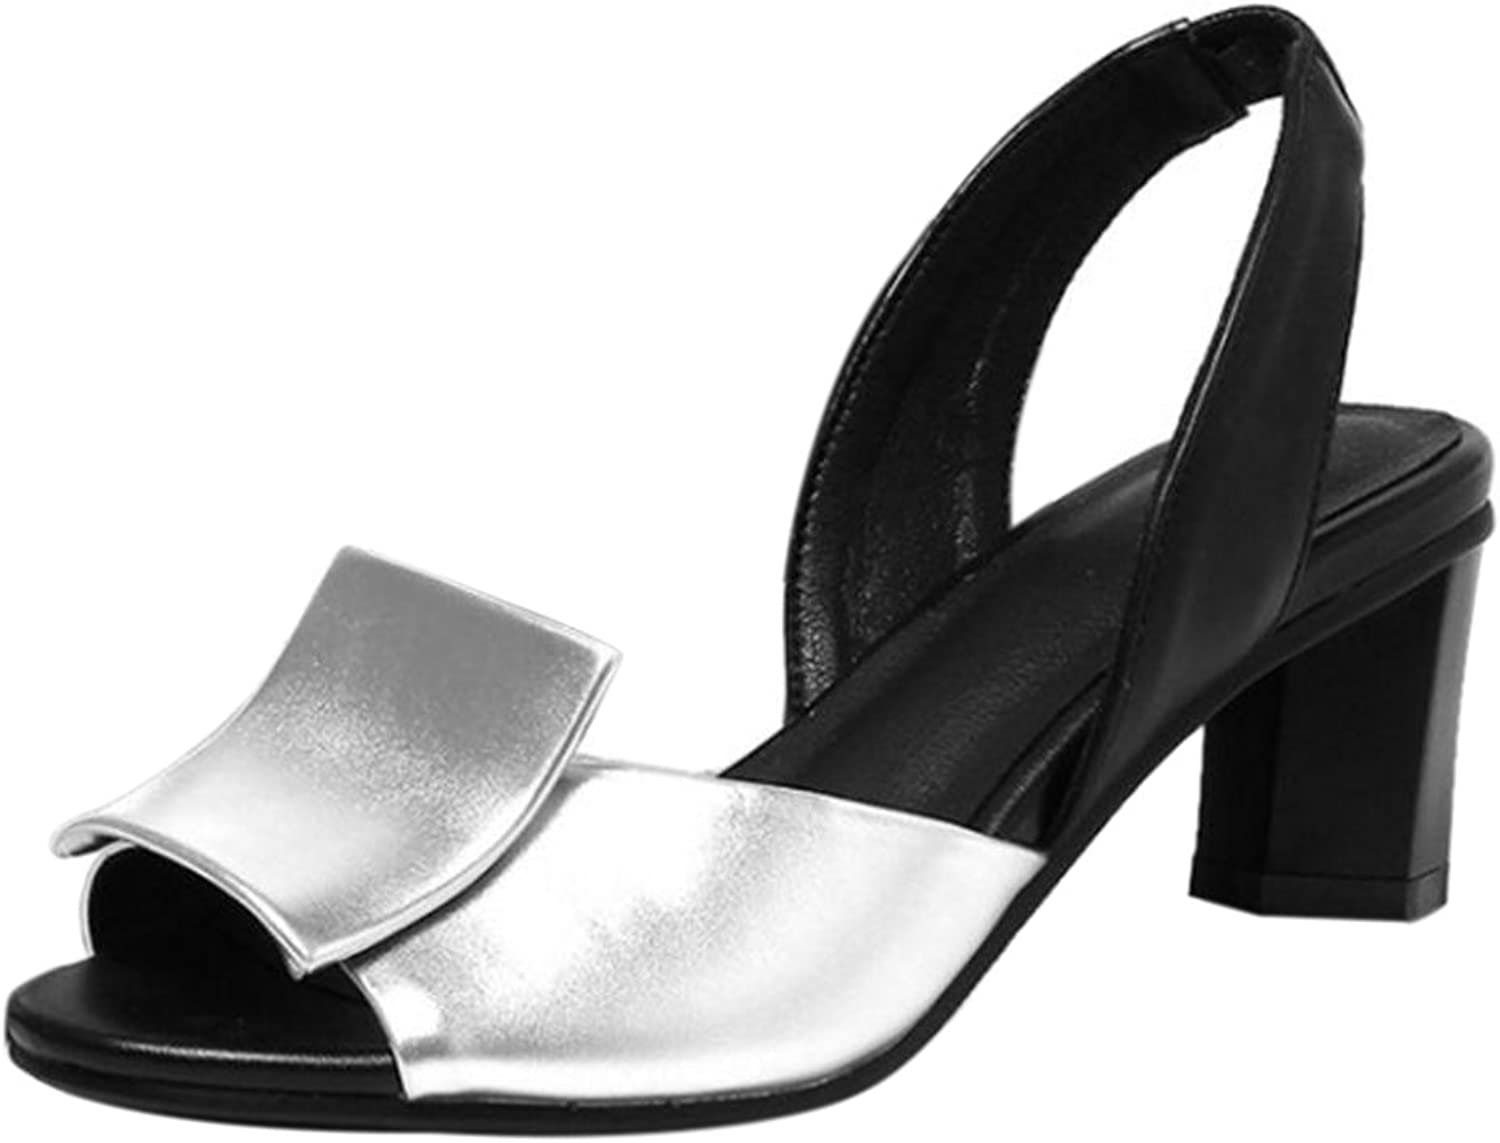 AicciAizzi Women Slip On Sandals shoes